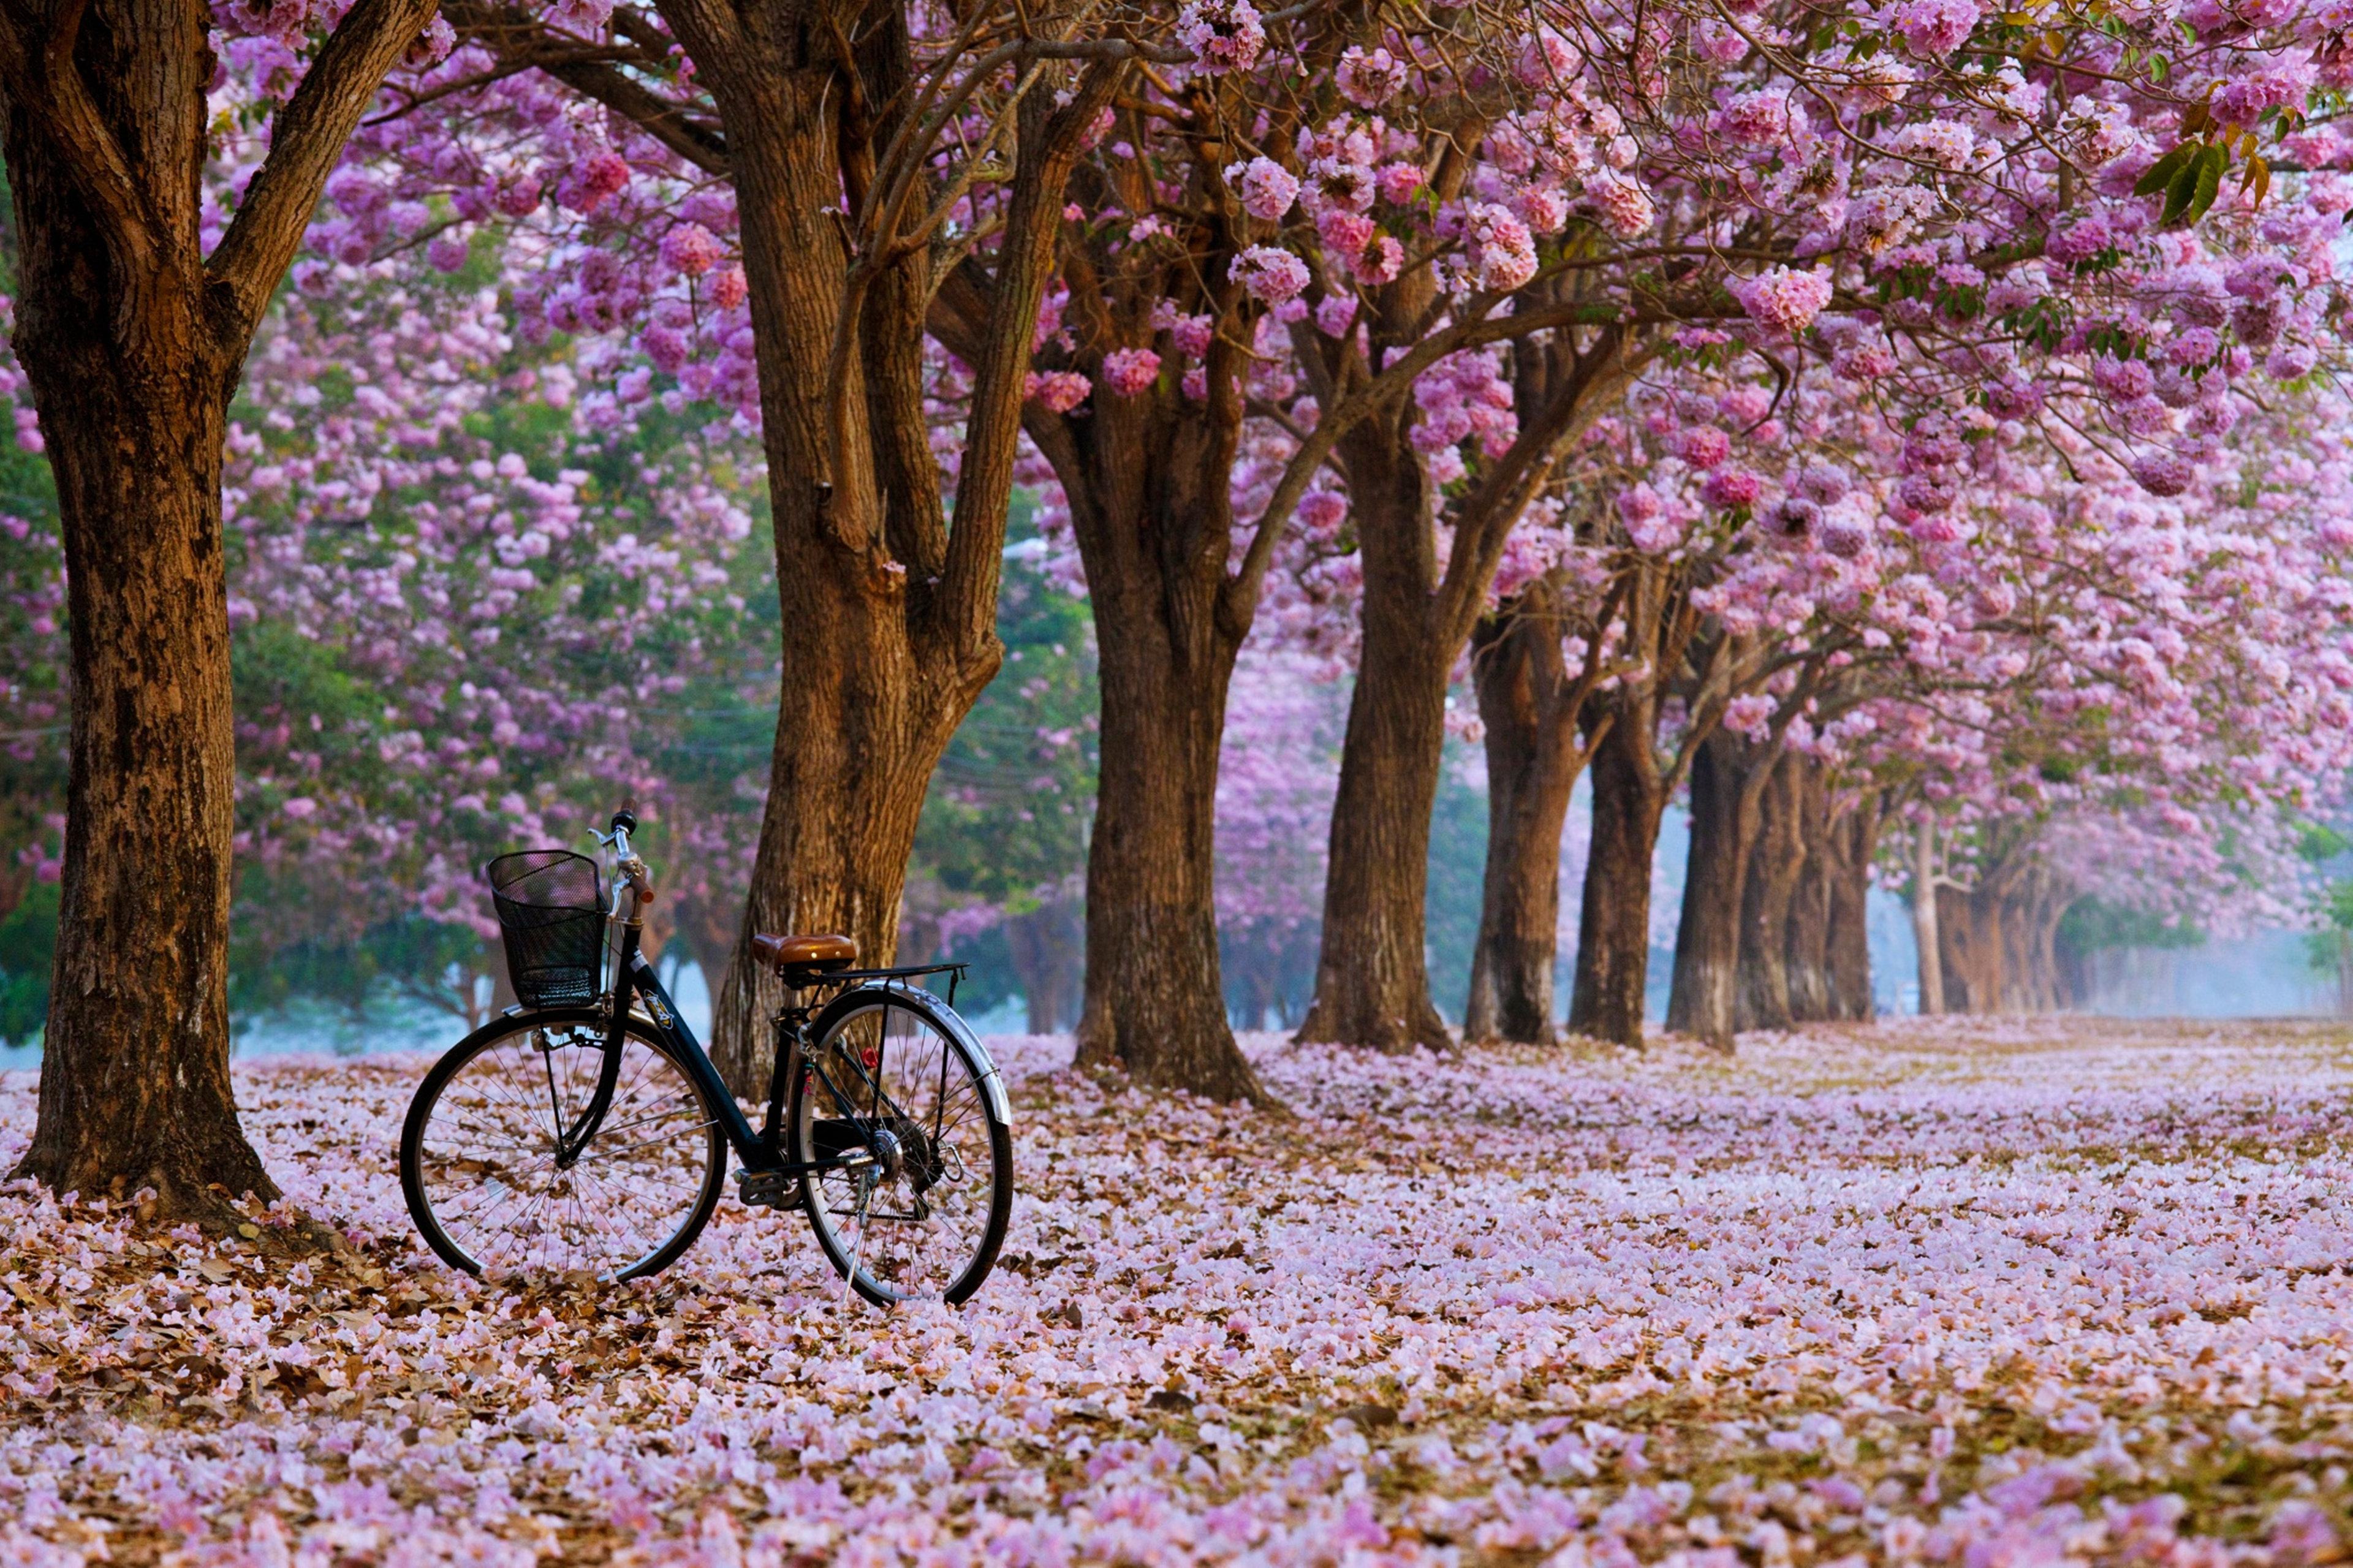 4k Nature Spring Wallpaper: Bicycle 4k Ultra HD Wallpaper